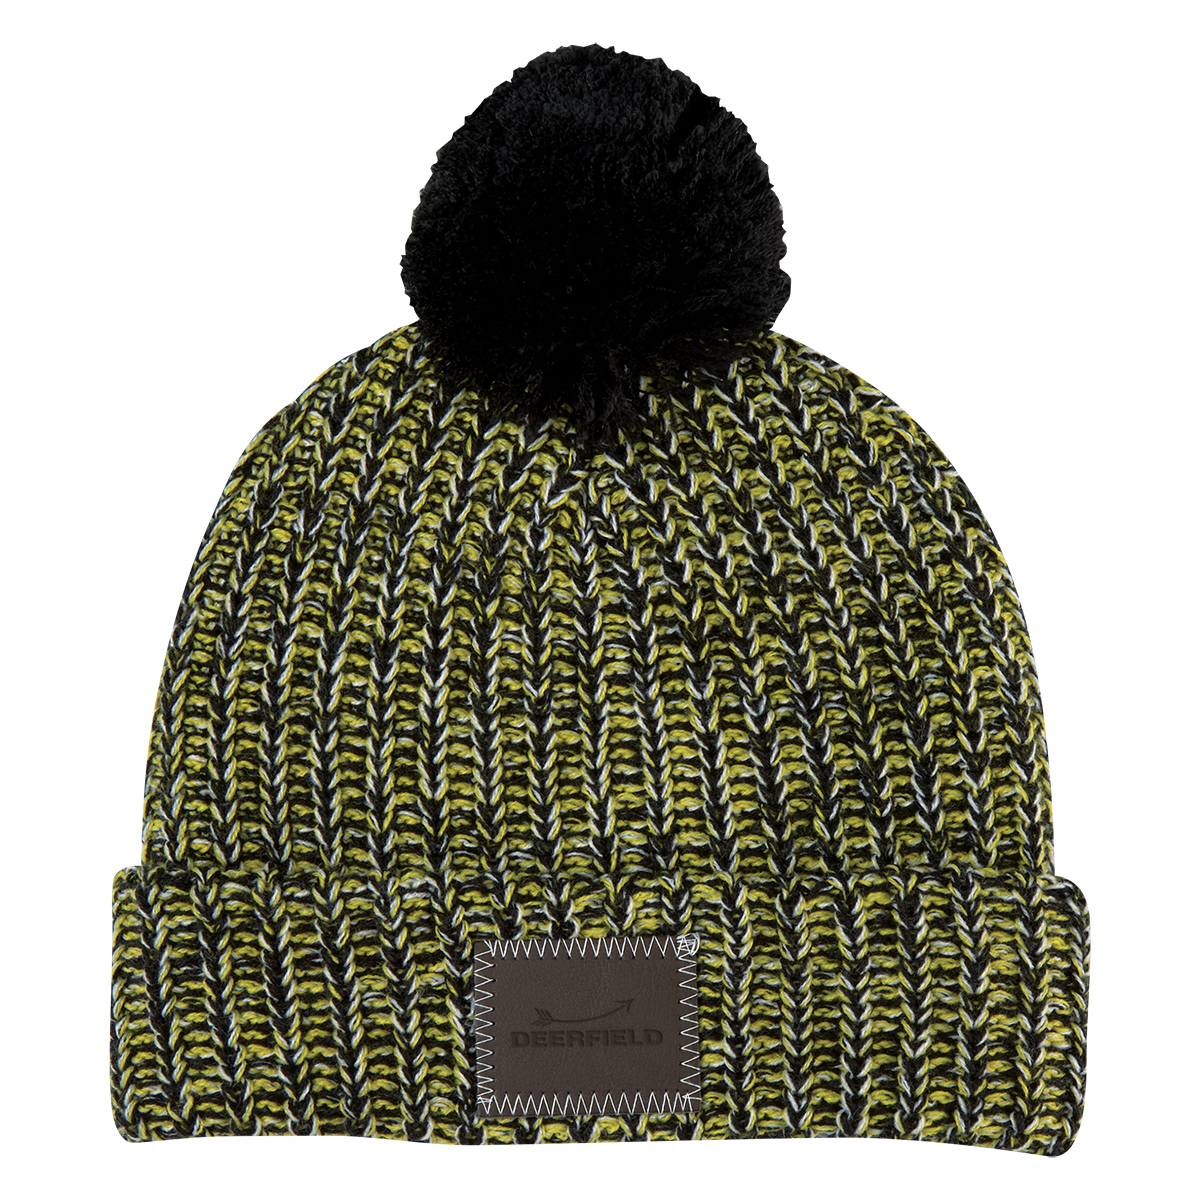 9ae7ff42e7f Pom Beanie with Cuff. These 100% acrylic pom beanies come in 8 different  colors